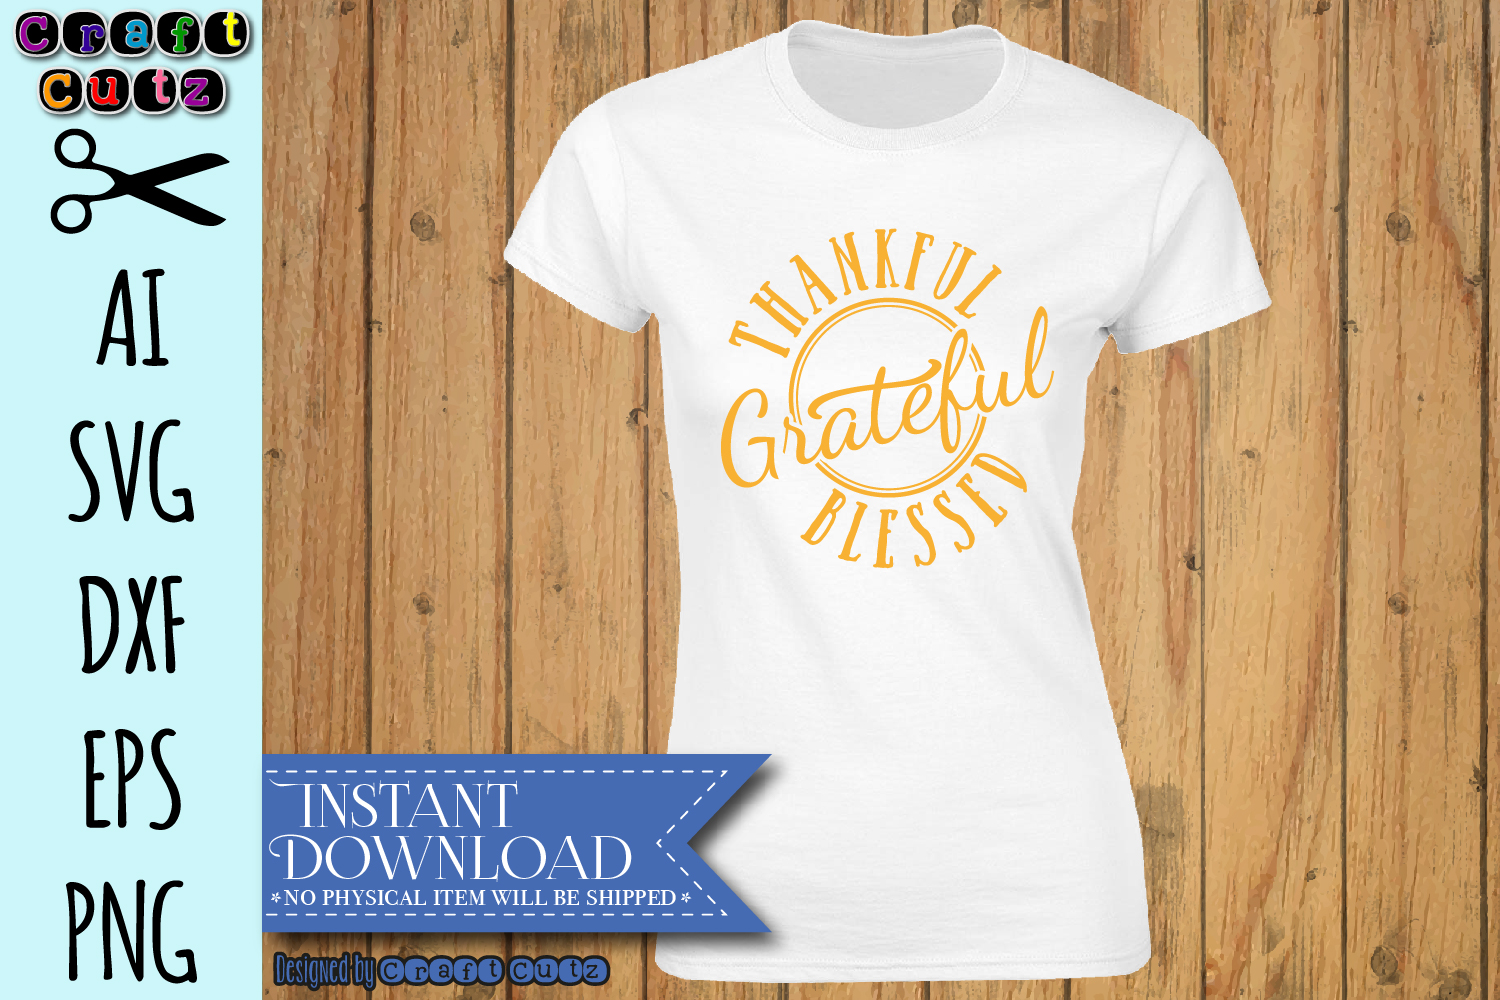 Thanksgiving Maternity SVG, Thankful Grateful Blessed SVG example image 2